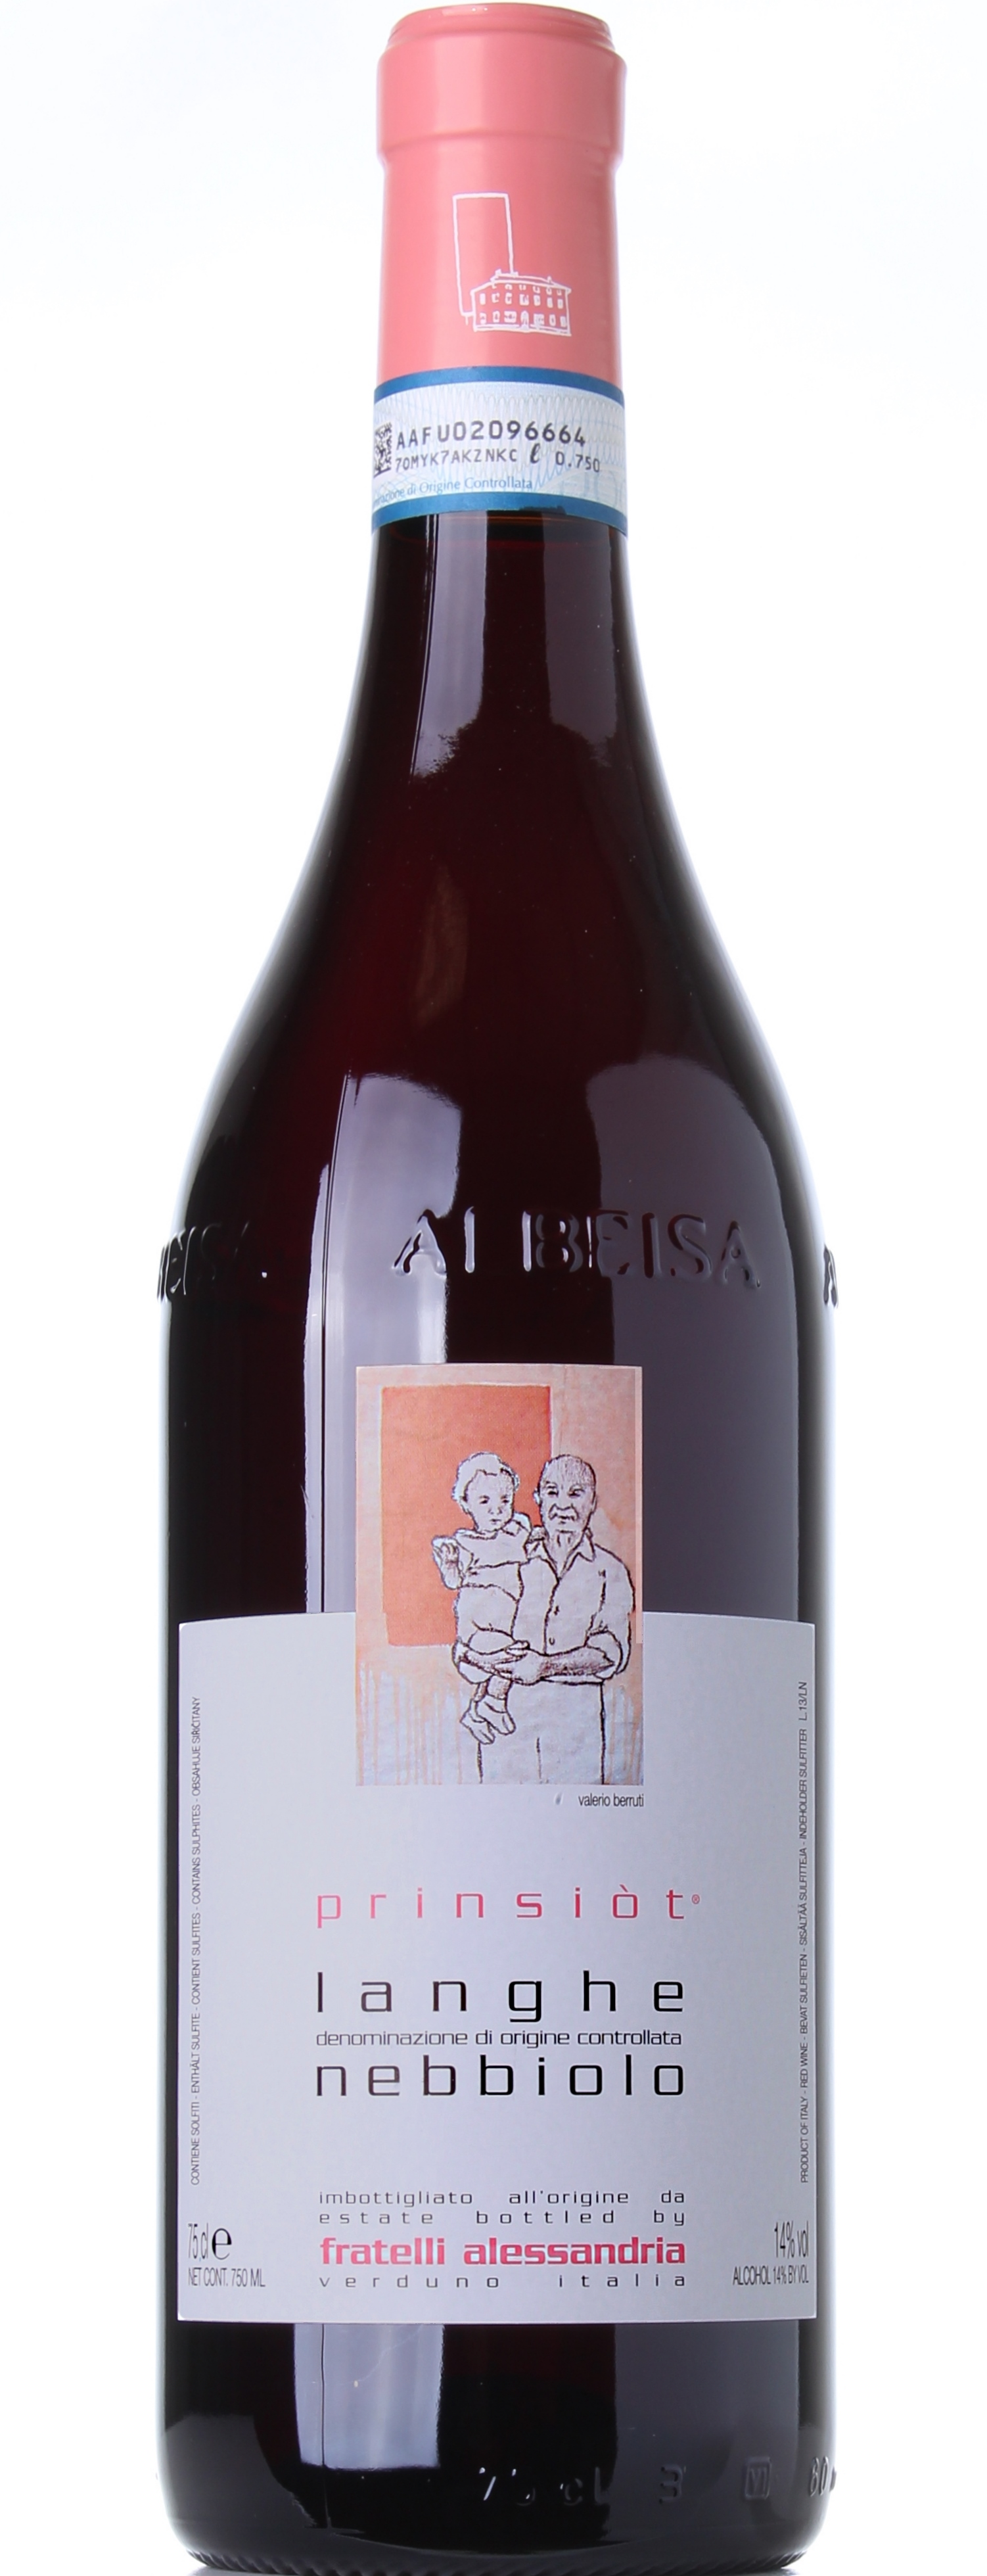 FRATELLI ALESSANDRIA LANGHE NEBBIOLO PRINSIOT 2012